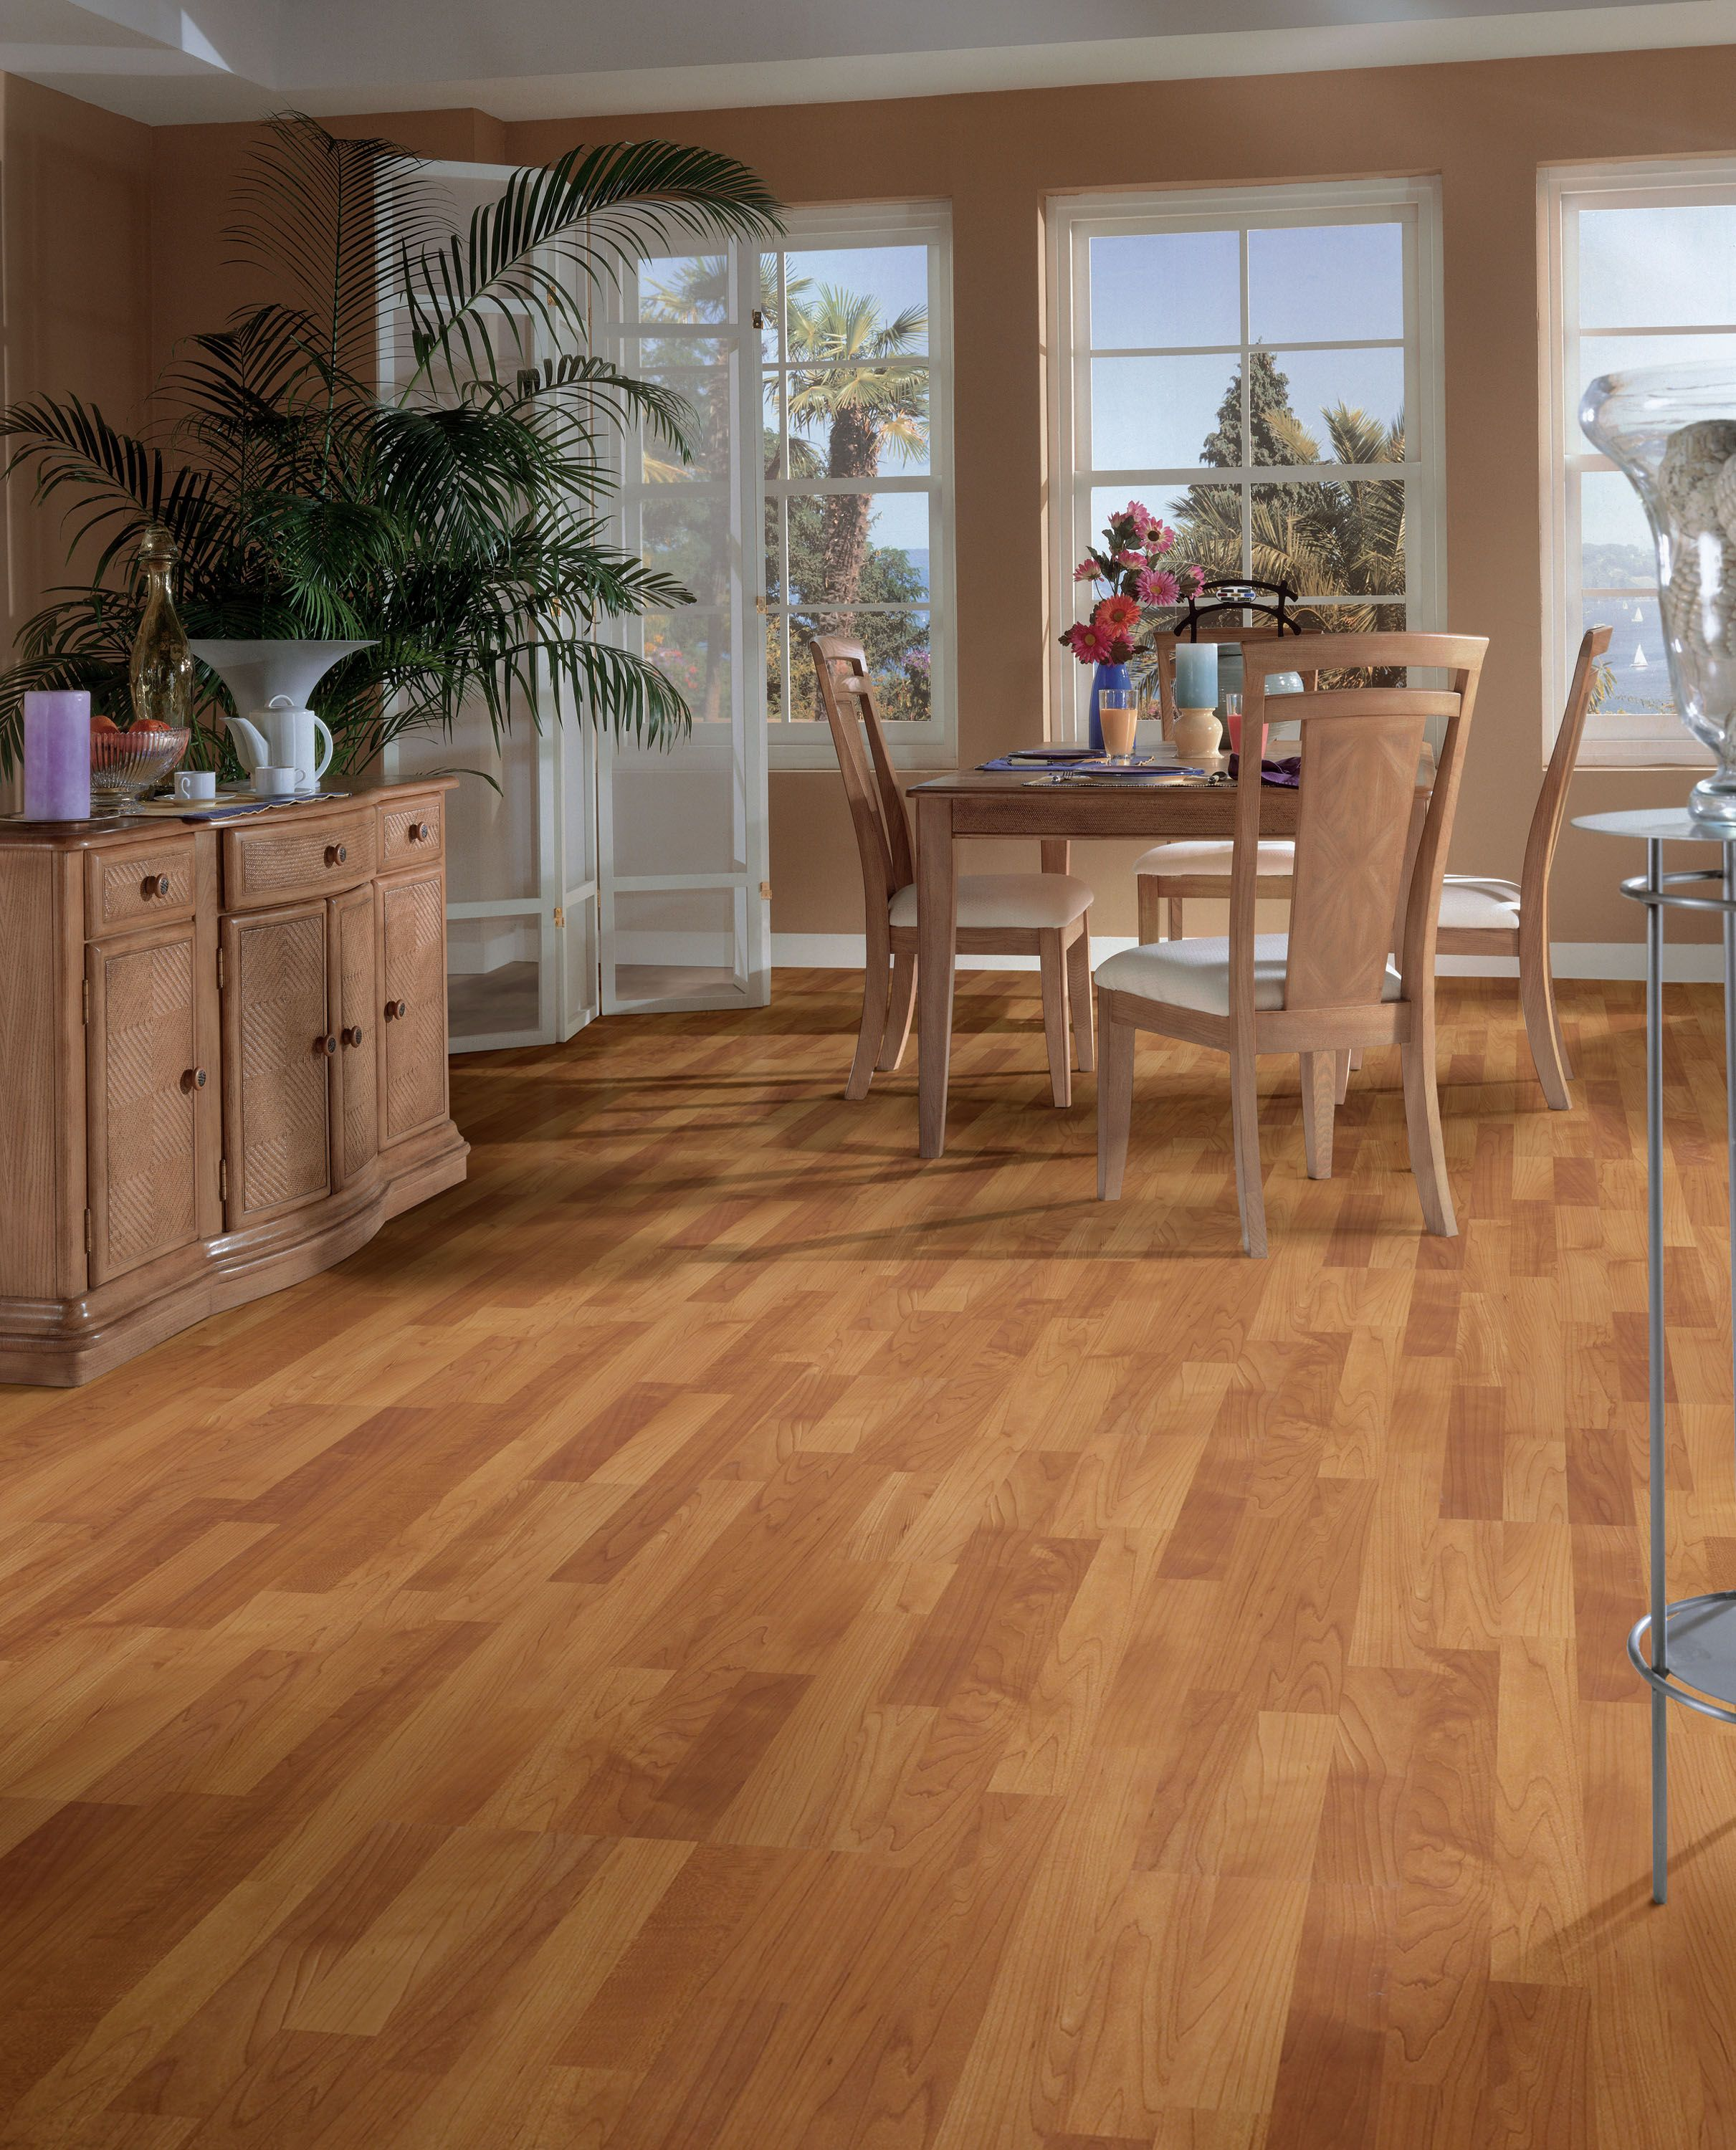 laminate flooring Google Search Flooring cost, Vinyl